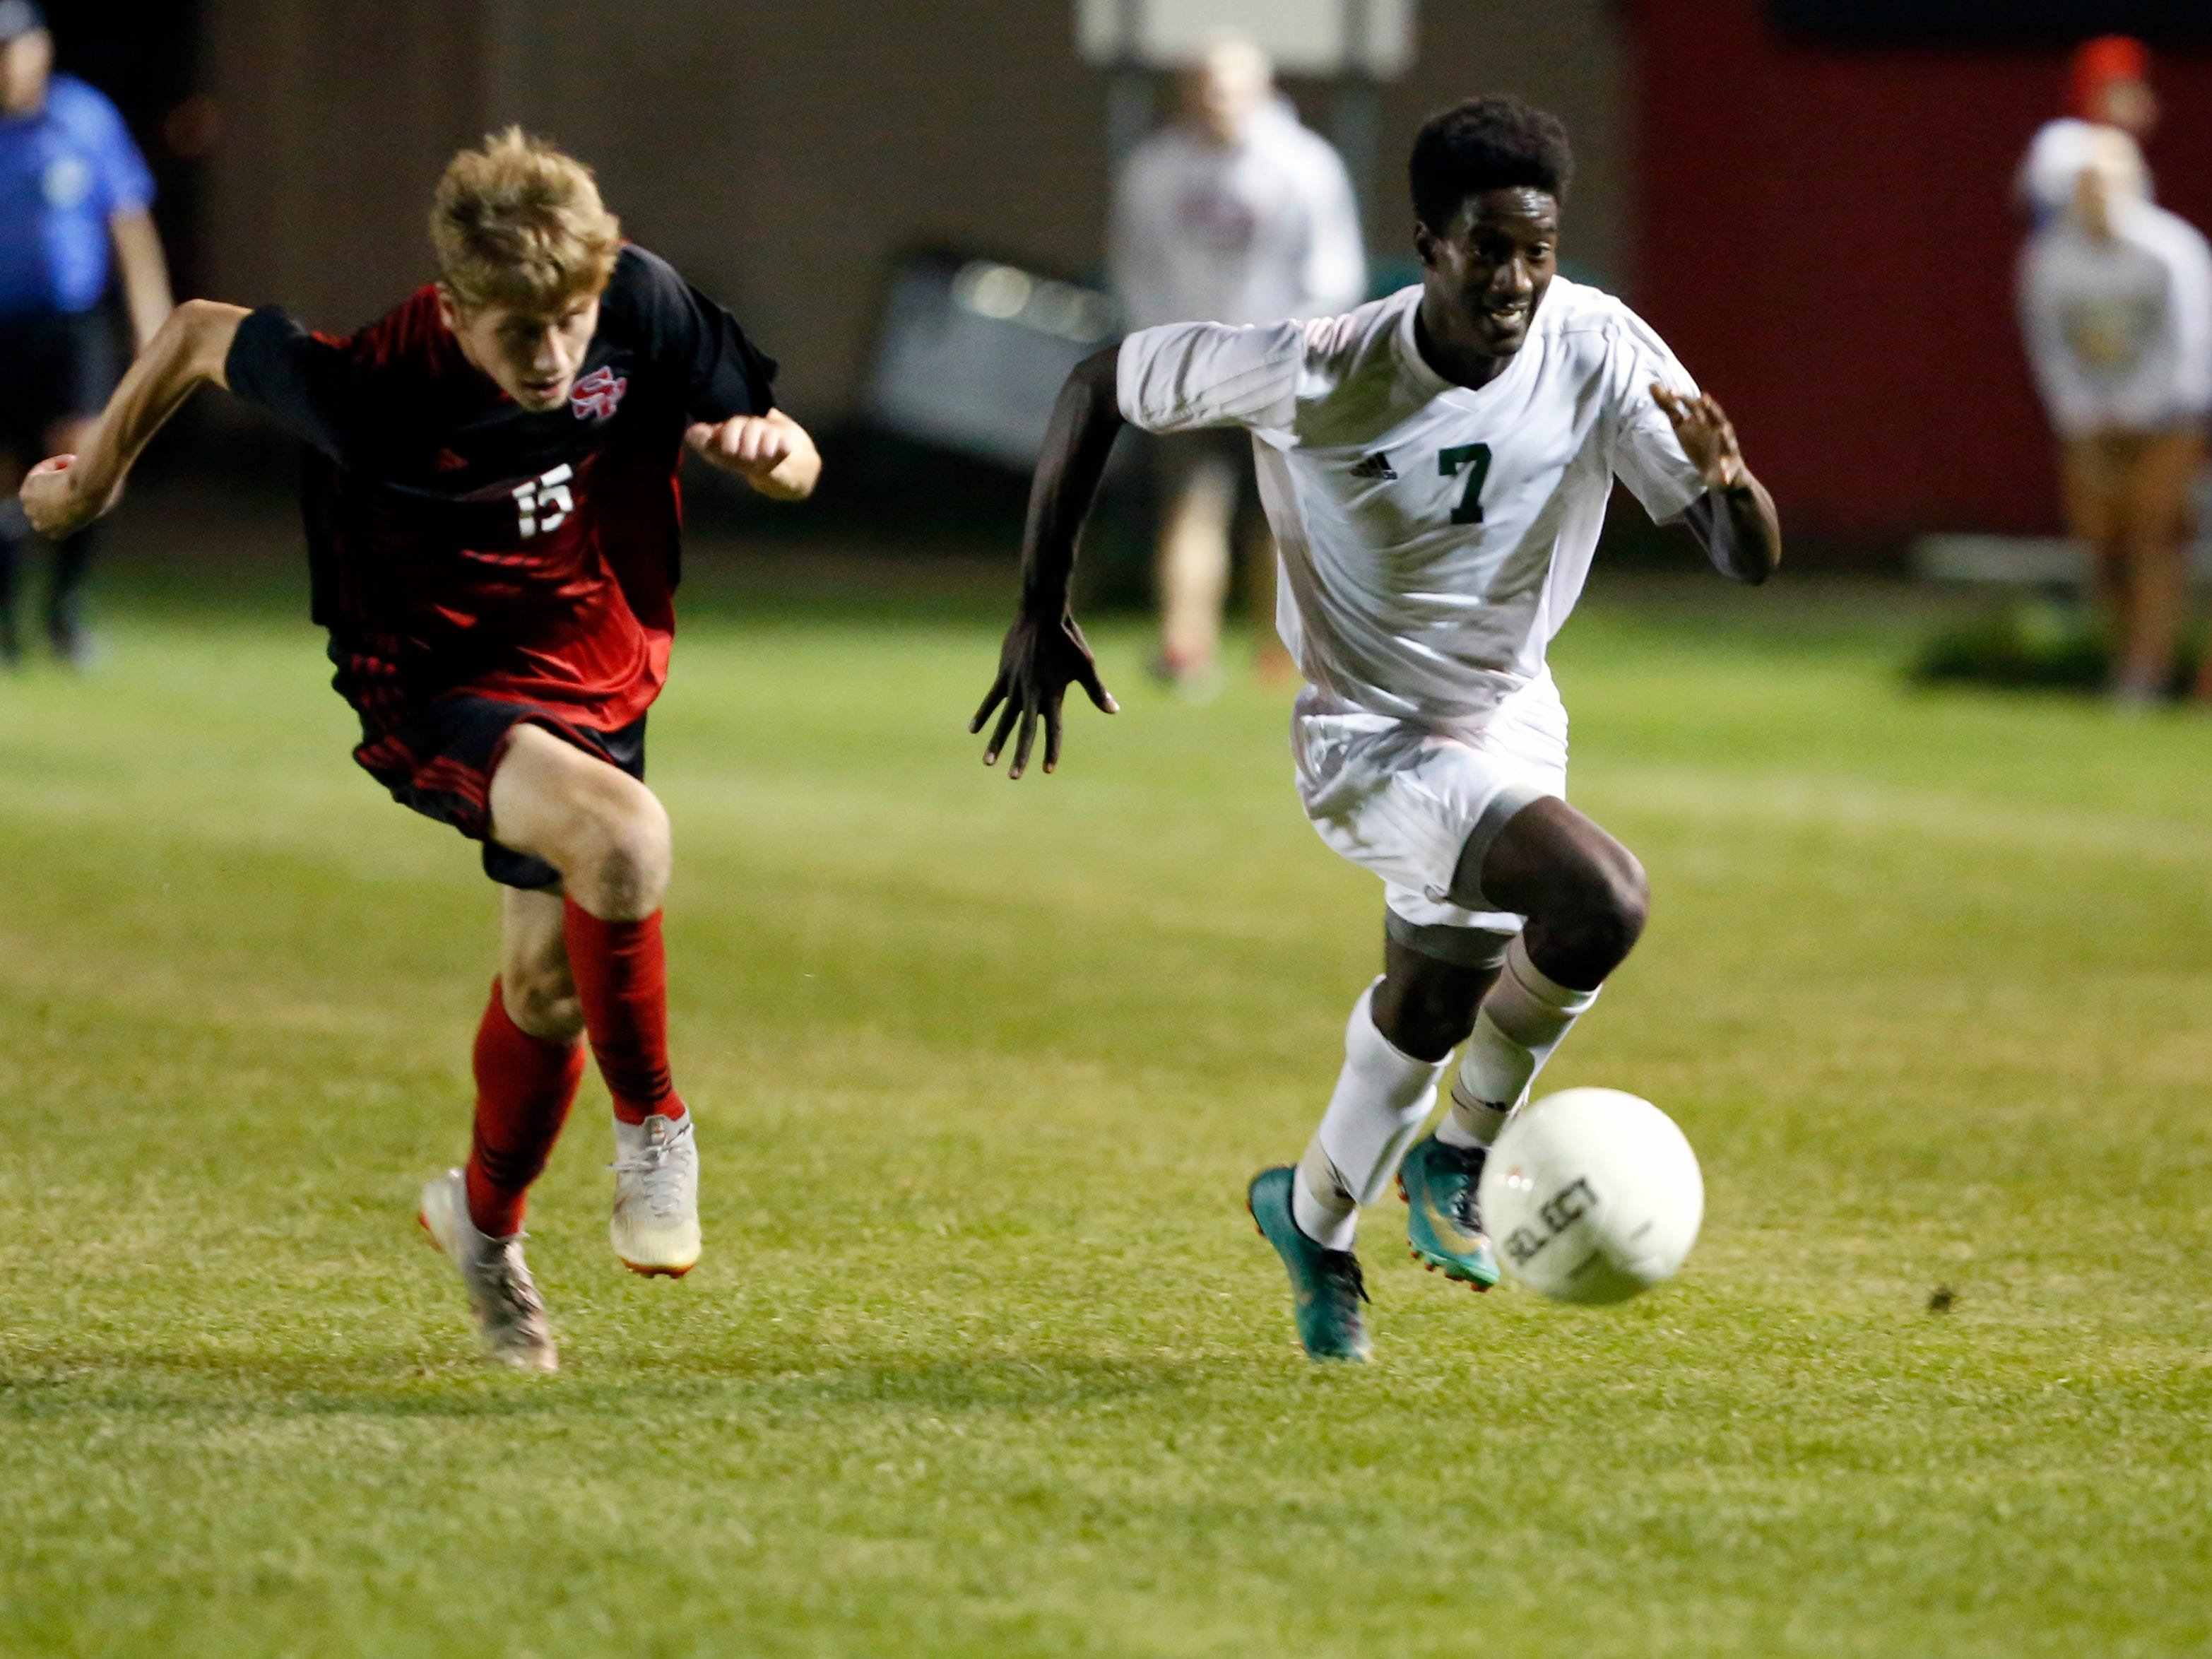 D.C. Everest player Tamirat Knutson makes a run trailed by SPASH player Marshall Sallet during a soccer game between SPASH and D.C. Everest in Stevens Point, Wis., September 13, 2018.